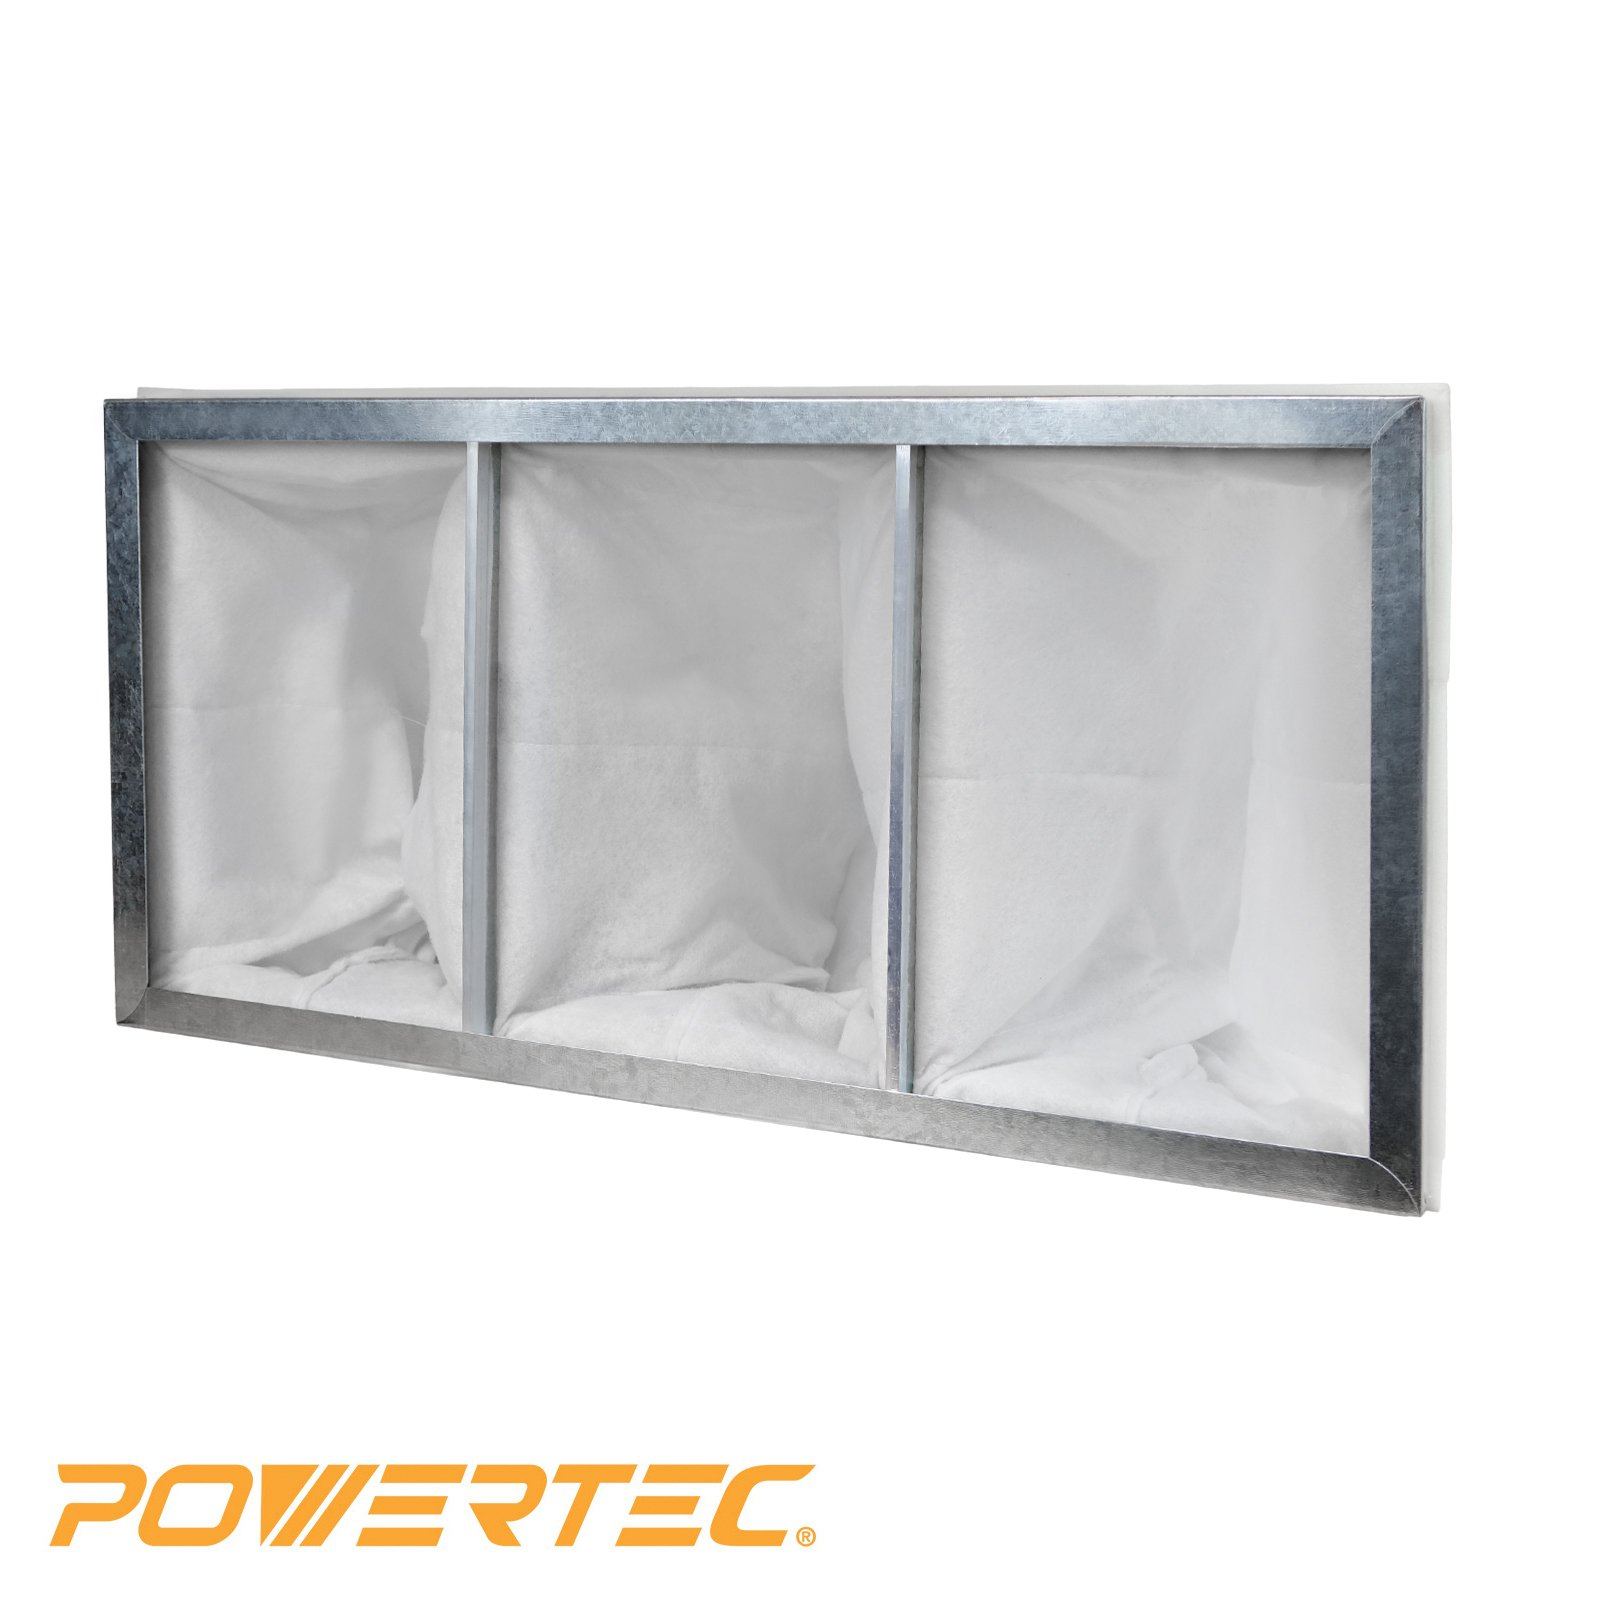 POWERTEC 75019 Inner Filter for POWERTEC AF1044 by POWERTEC